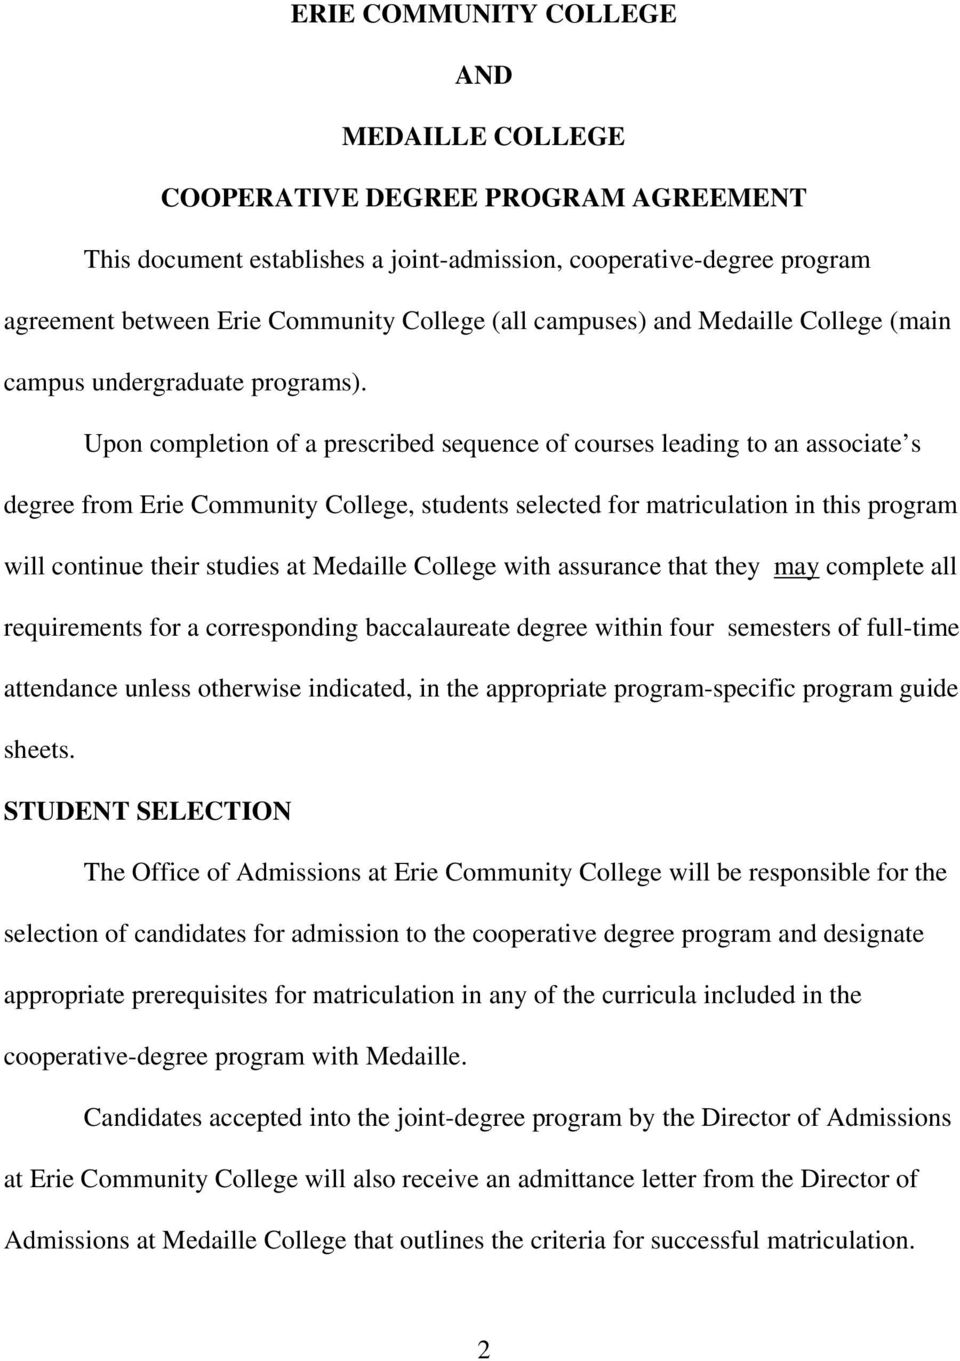 Upon completion of a prescribed sequence of courses leading to an associate s degree from Erie Community College, students selected for matriculation in this program will continue their studies at